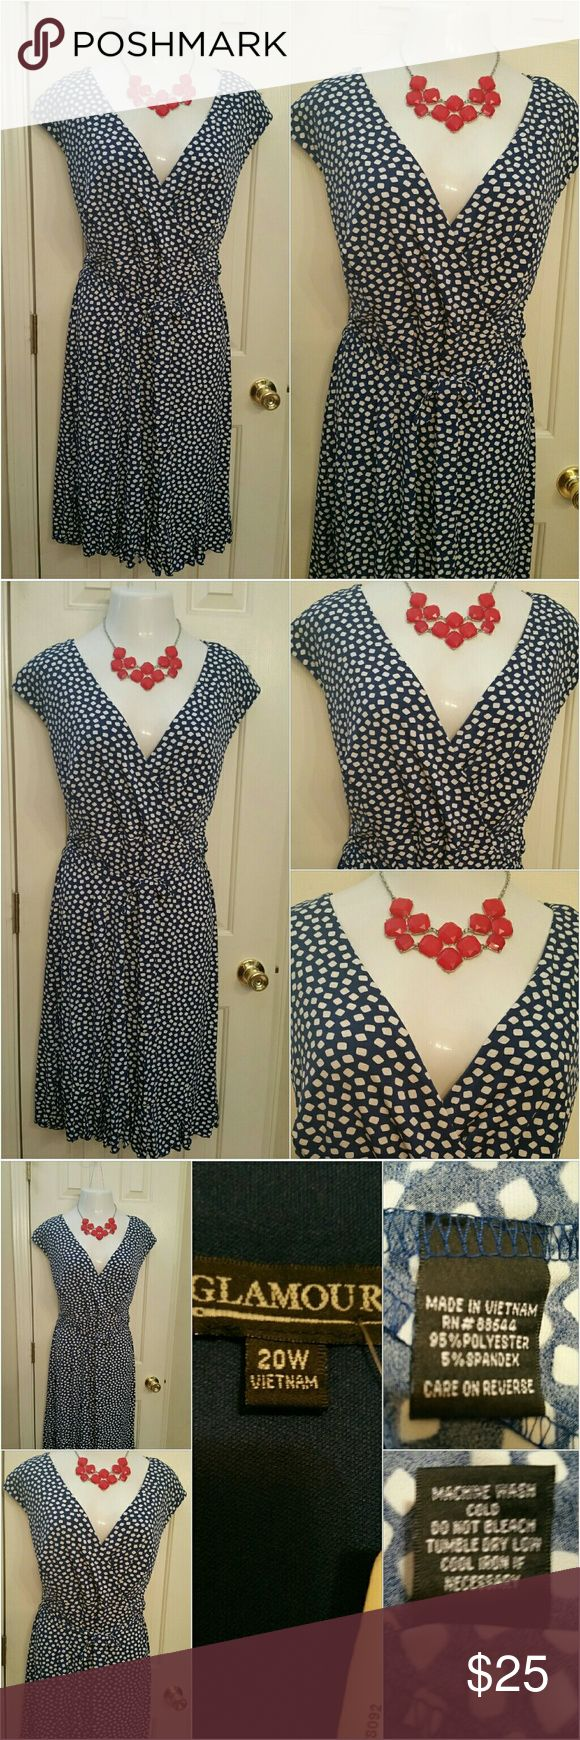 Women plus size Dress Glamour Women plus size blue and white belted dress. Ruffle at the hem . Excellent condition. NWT.  Can be worn at the office.  church, and special events. Size 20W  Measurement  Shoulder to shoulder 21inch Bust 21inch  Waist 21inch  Length 43inch Glamour & Co. Dresses Midi